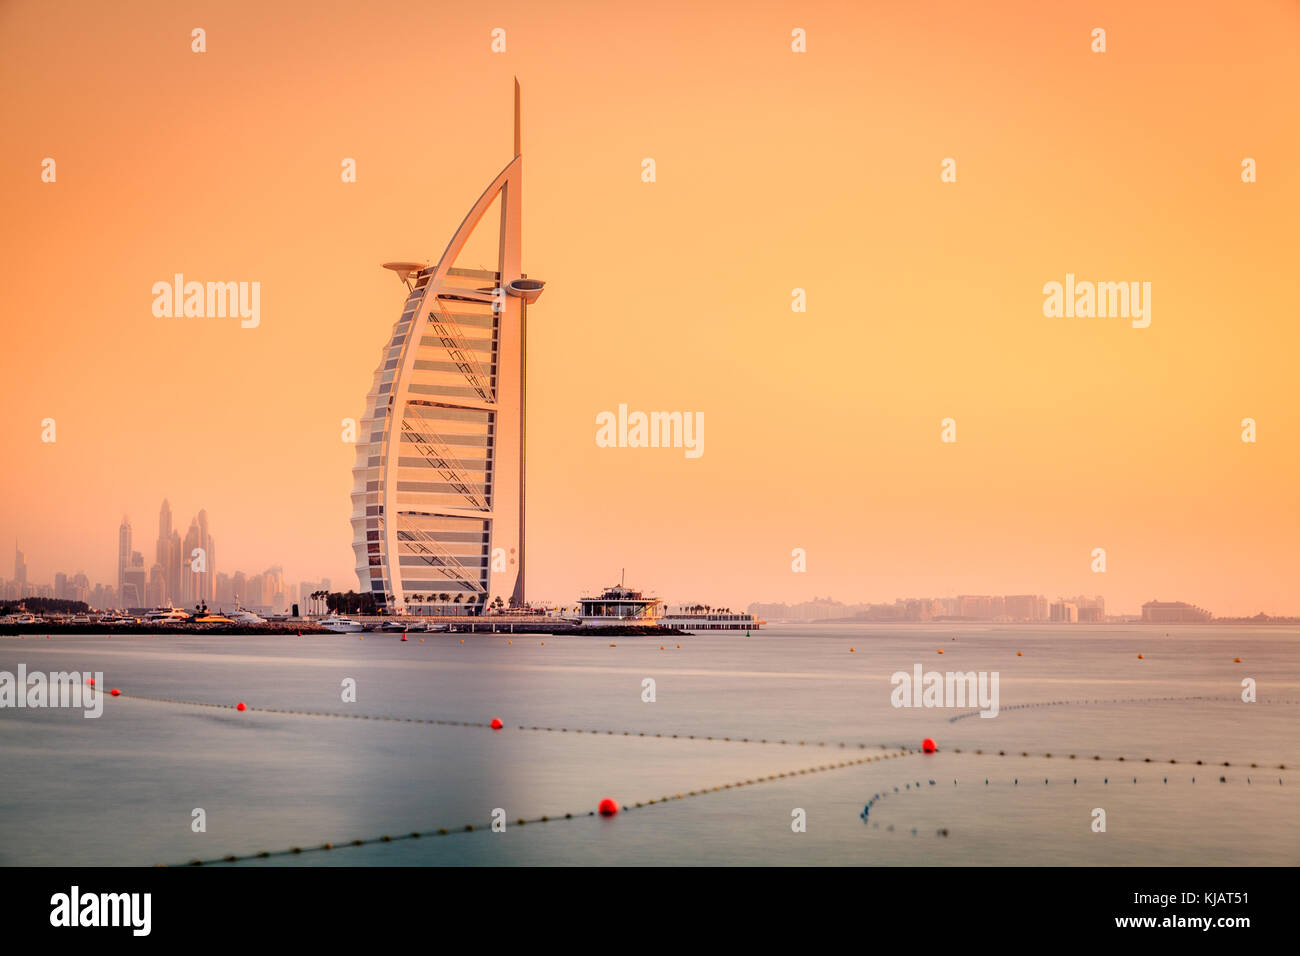 Dubai, UAE, June 7, 2016: view of world's famous Burj Al Arab Hotel at sunset - Stock Image